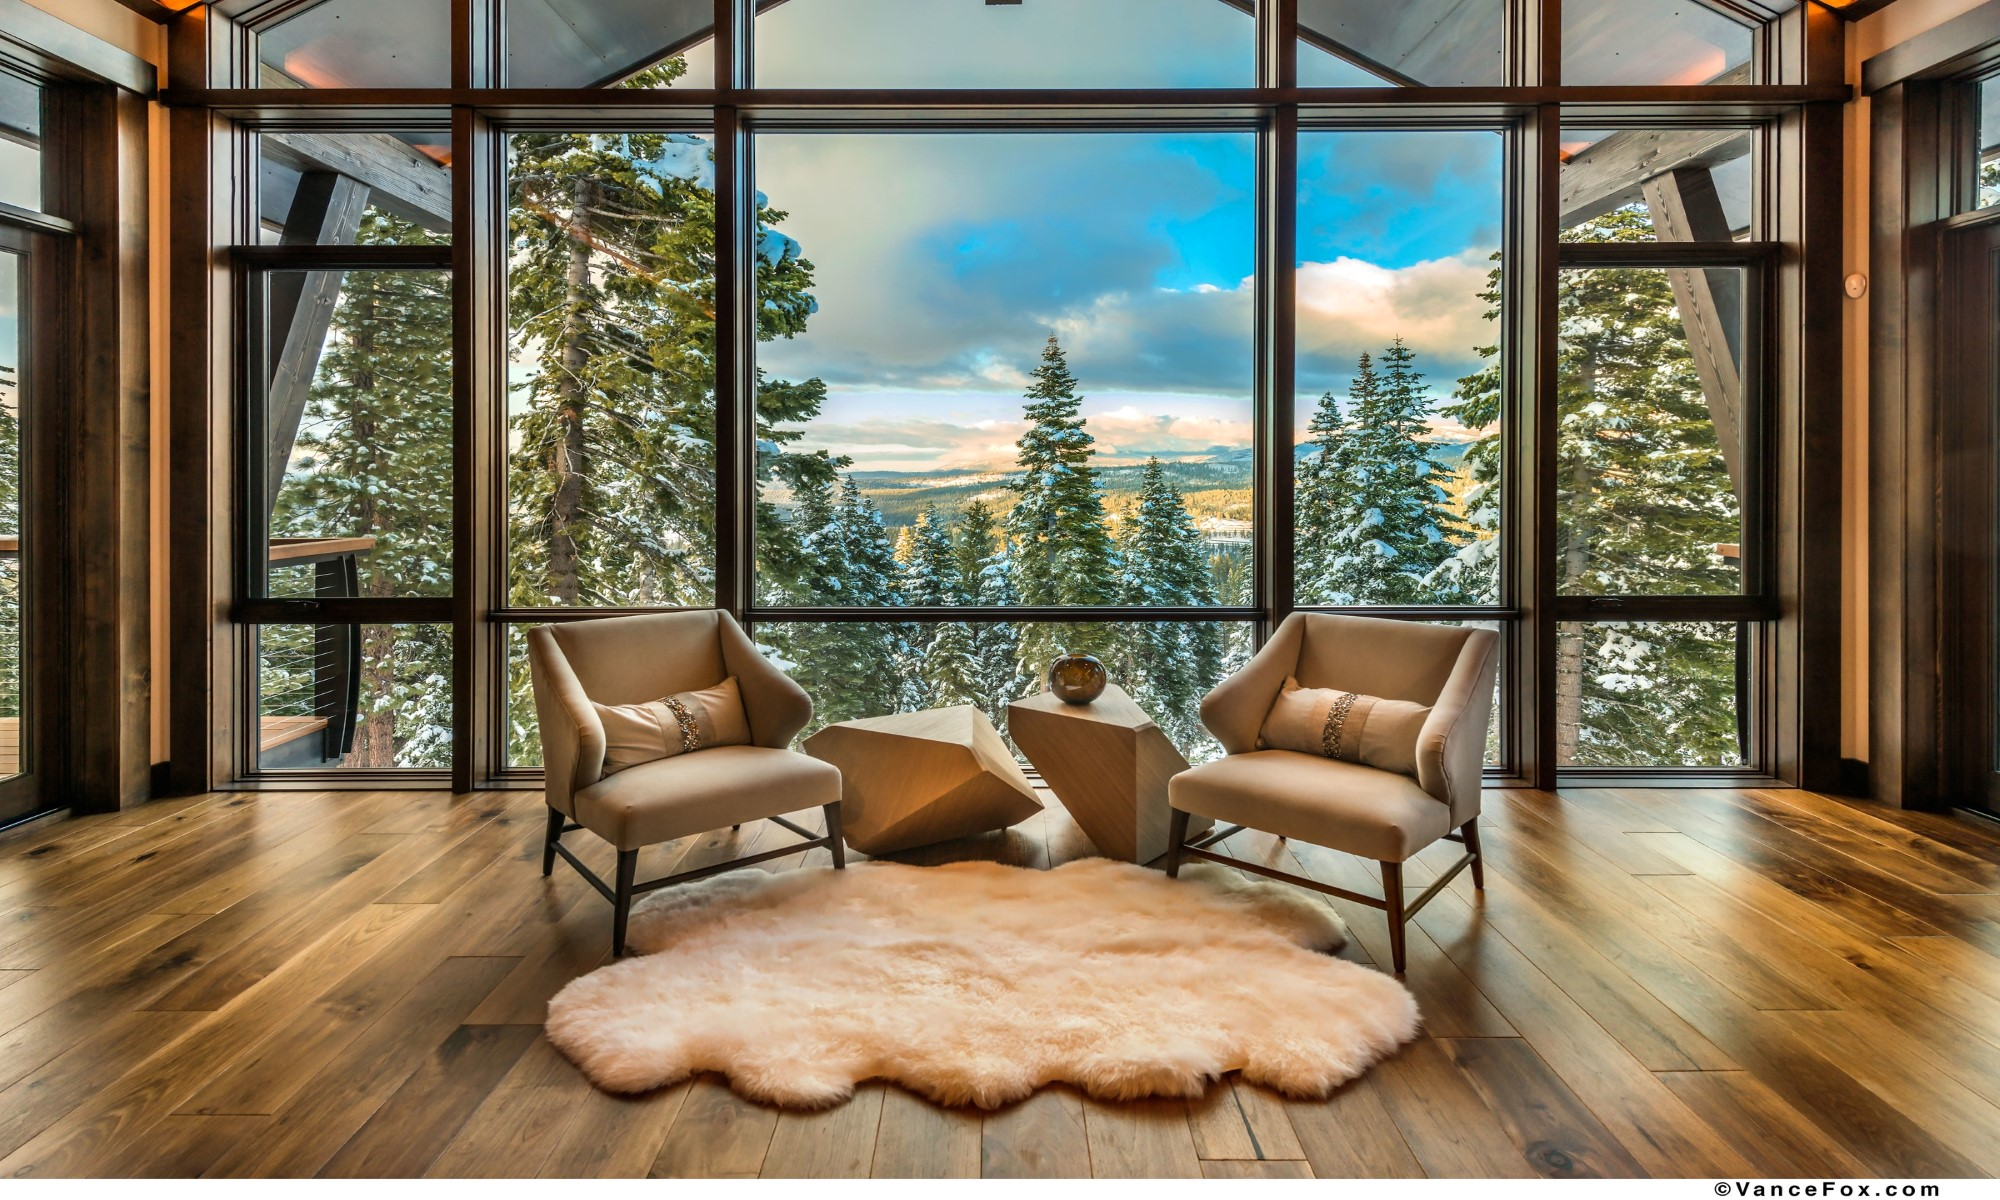 Single Family Home for Sale at 19040 Glades Place Truckee, California 96161 United States